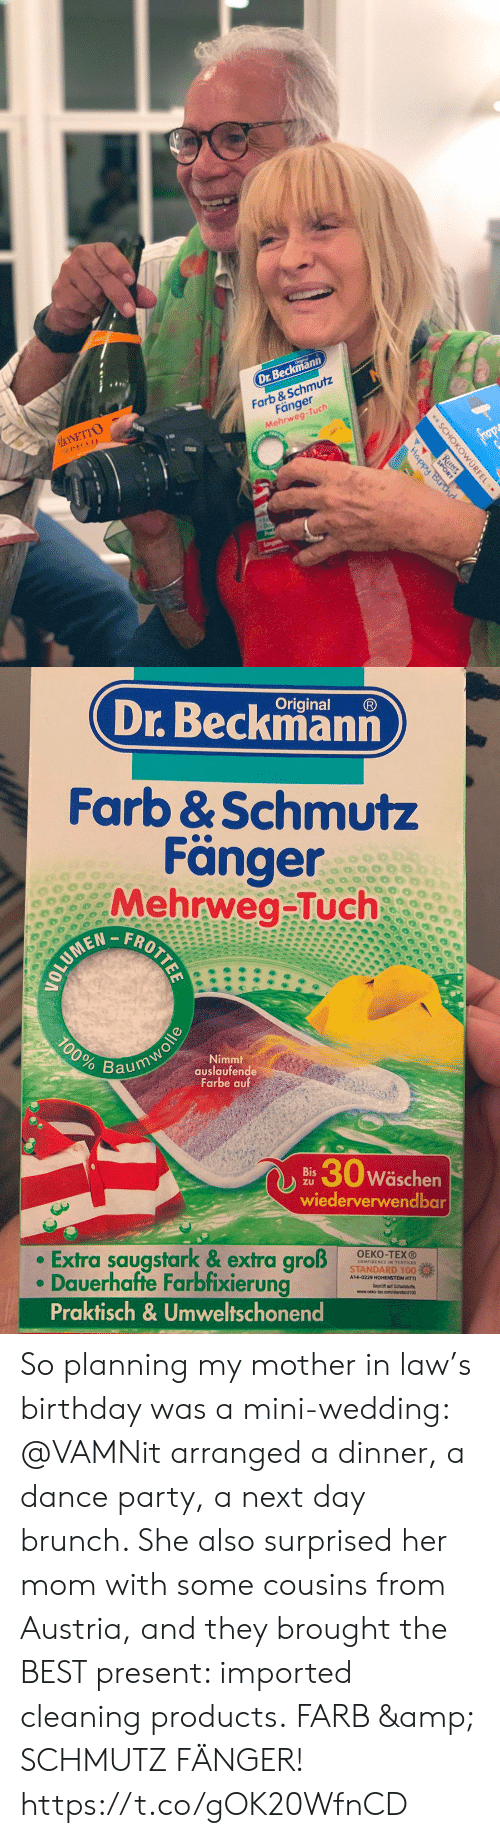 Birthday, Memes, and Party: Dr.Beckmann  MONETTO  PROSECCO  Farb &Schmutz  Fänger  Mehrweg-Tuch  frop  Happy Bir d  Langan  SCHOKOWURFEL  Ritter  SPORT  .   Original  Dr.Beckmann  Farb &Schmutz  Fänger  Mehrweg-Tuch  FROTTEE  100%  Nimmt  auslaufende  Farbe auf  Baumwolle  30w  Wäschen  Bis  ZU  wiederverwendbar  Extra saugstark & extra groß  Dauerhafte Farbfixierung  Praktisch& Umweltschonend  OEKO-TEXO  STANDARD 100%  A14-0229 HOHENSTEIN HTTI So planning my mother in law's birthday was a mini-wedding: @VAMNit arranged a dinner, a dance party, a next day brunch. She also surprised her mom with some cousins from Austria, and they brought the BEST present:  imported cleaning products. FARB & SCHMUTZ FÄNGER! https://t.co/gOK20WfnCD